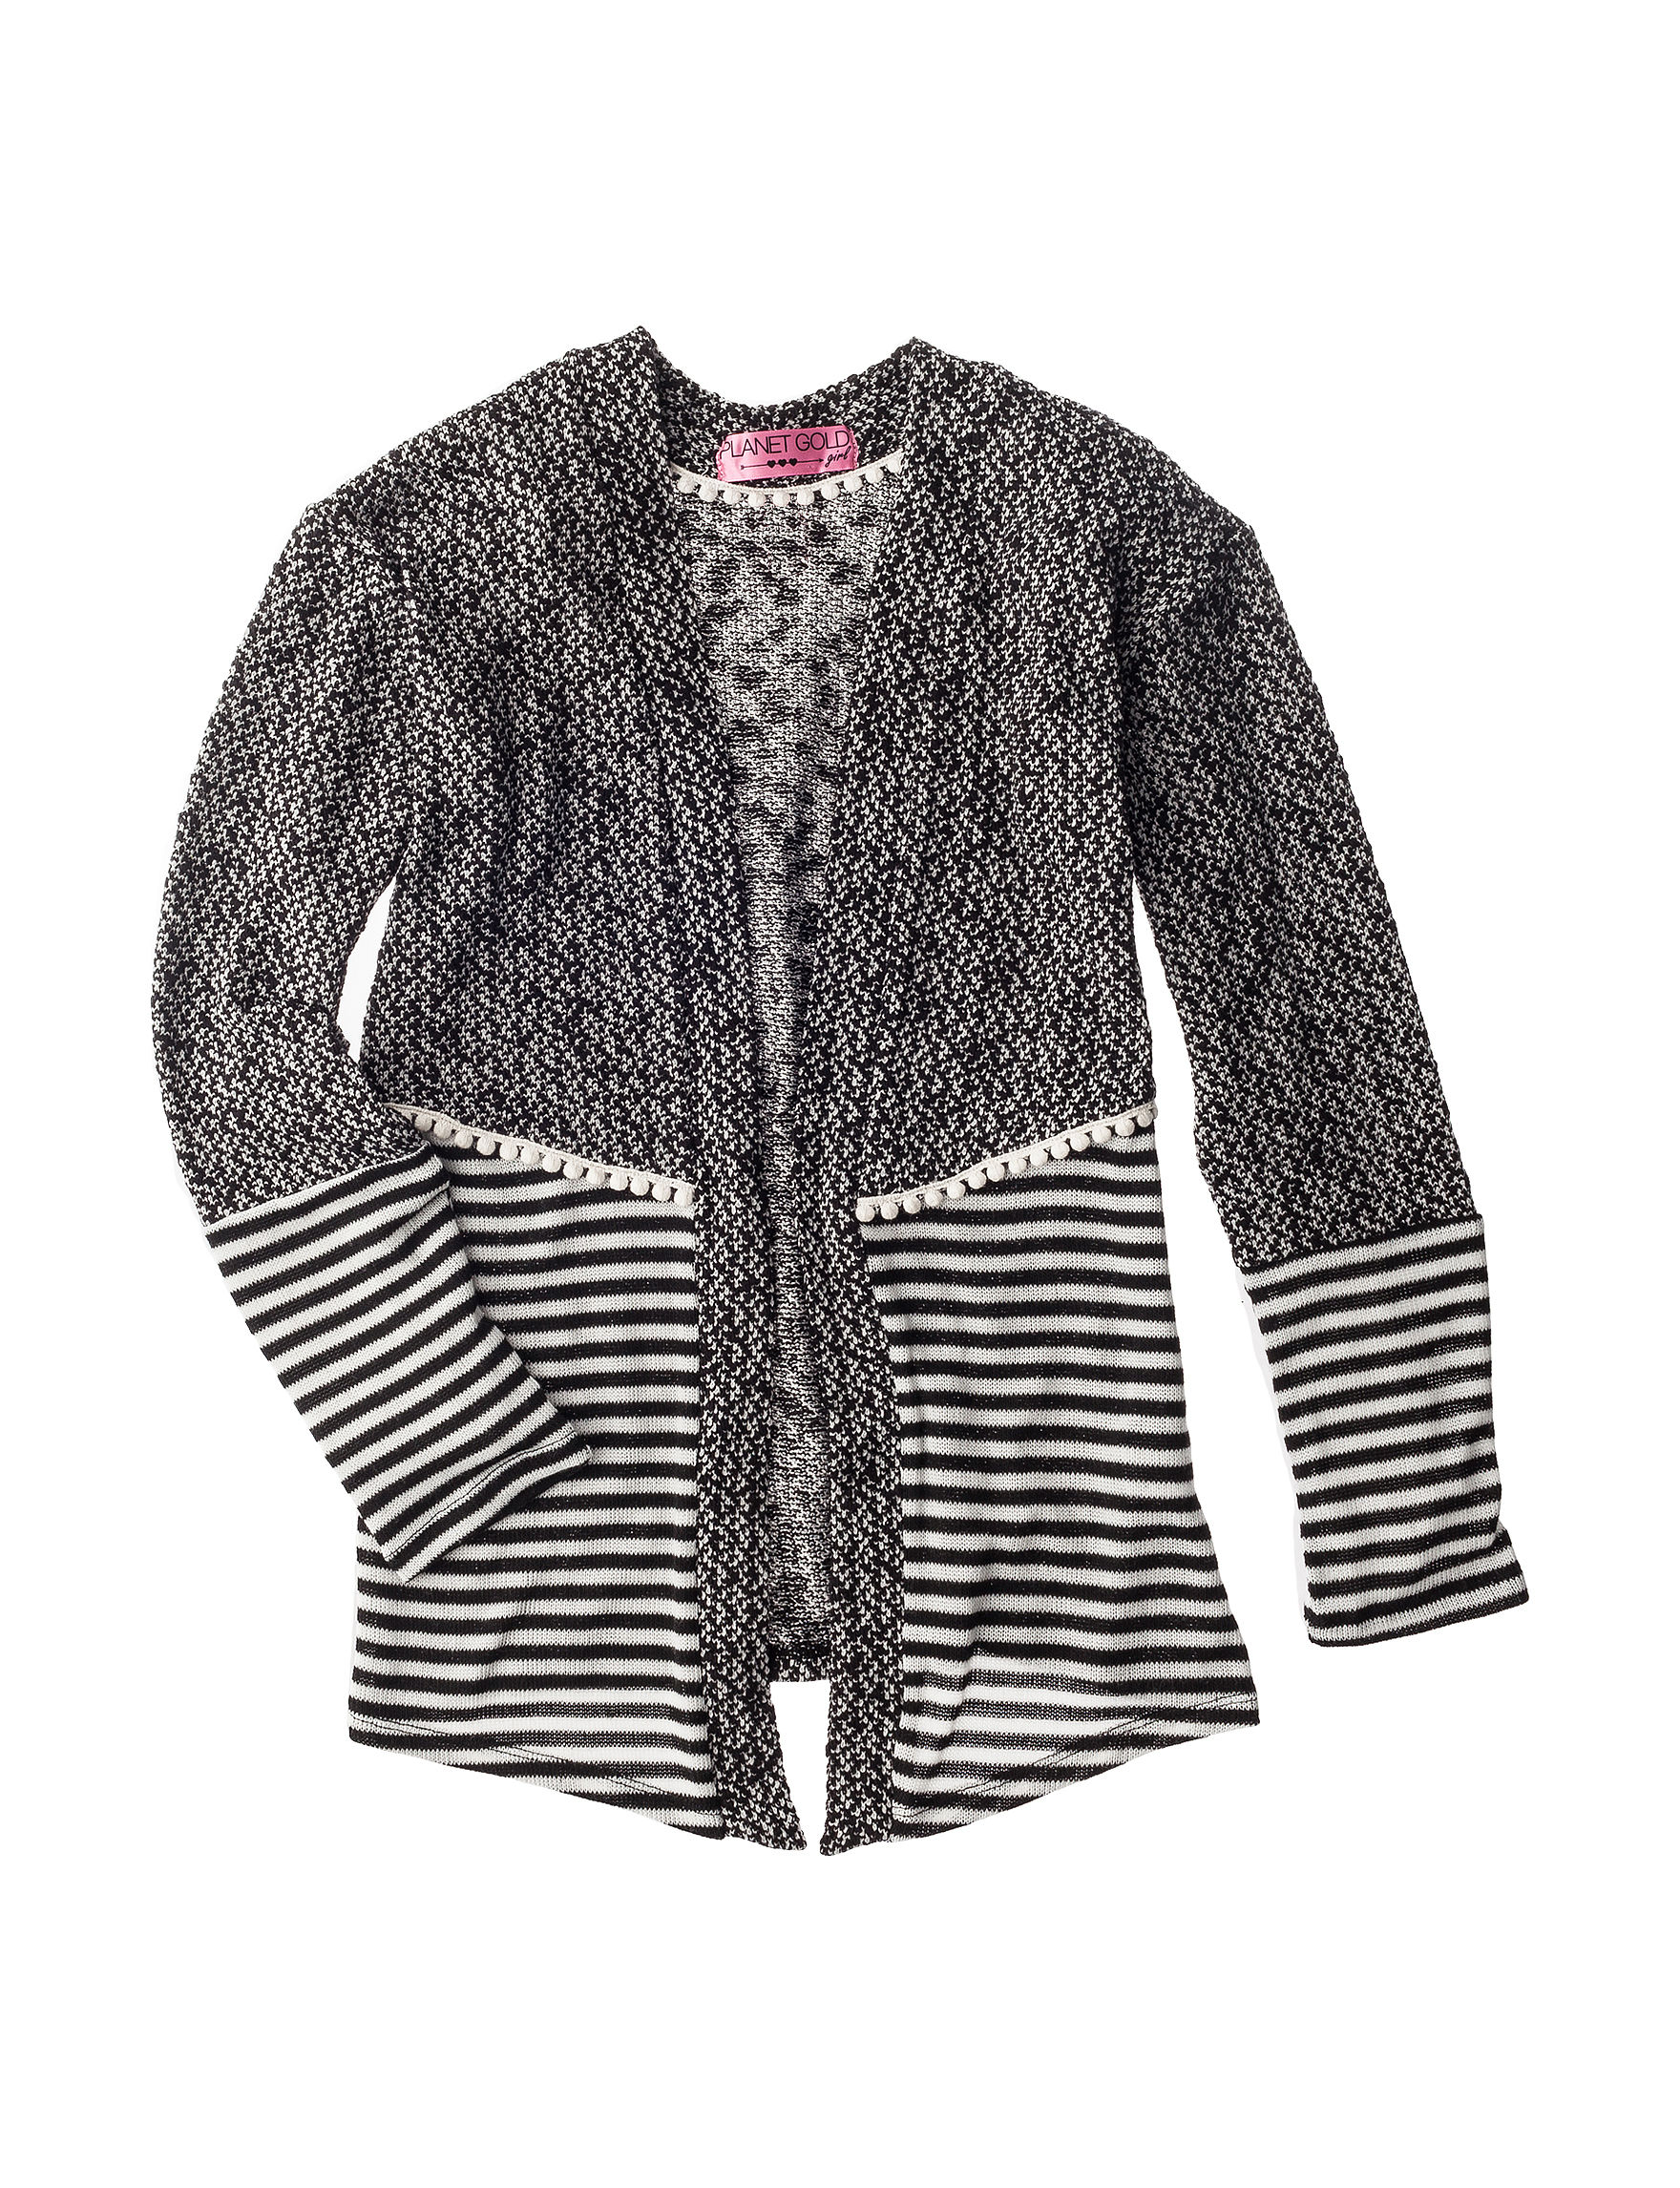 Planet Gold Lace Trim Cardigan - Girls 7-16 | Stage Stores